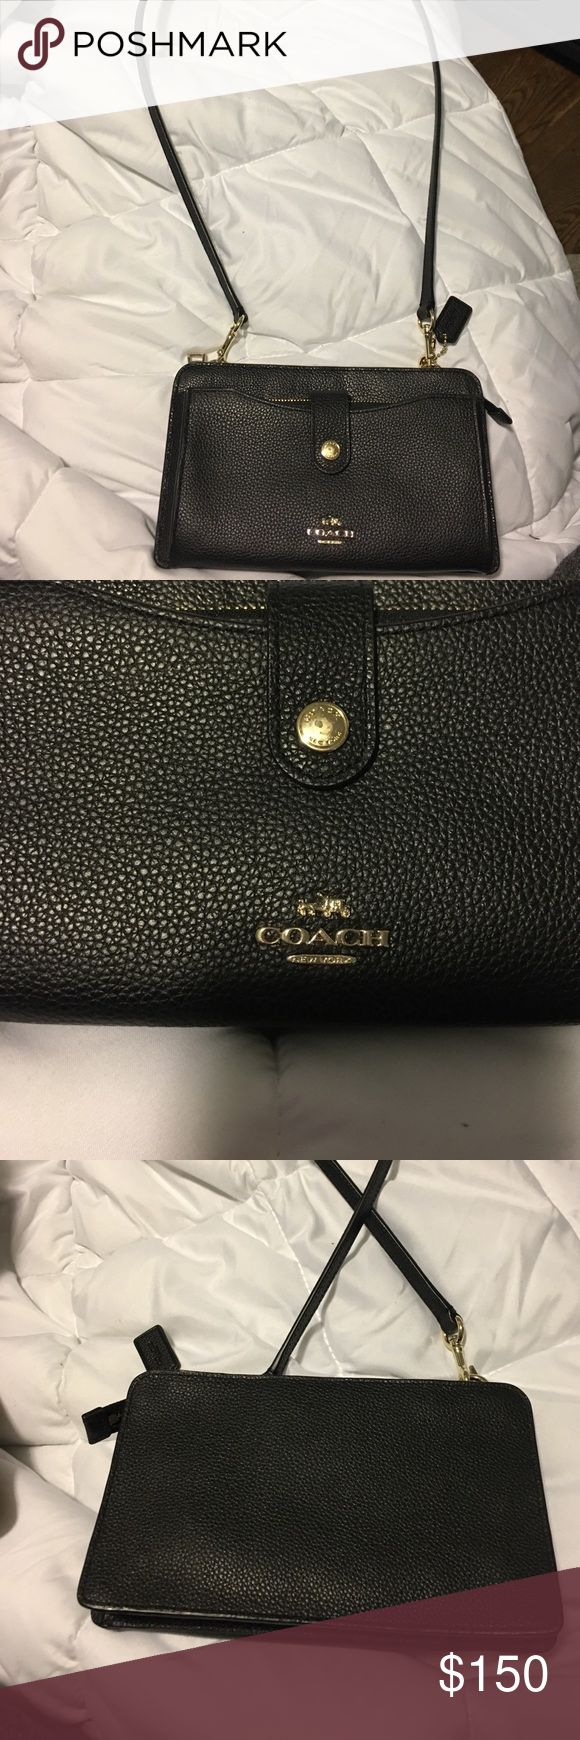 Coach purse Brand new, only used once! Bought from coach outlet store! Coach Bags Shoulder Bags